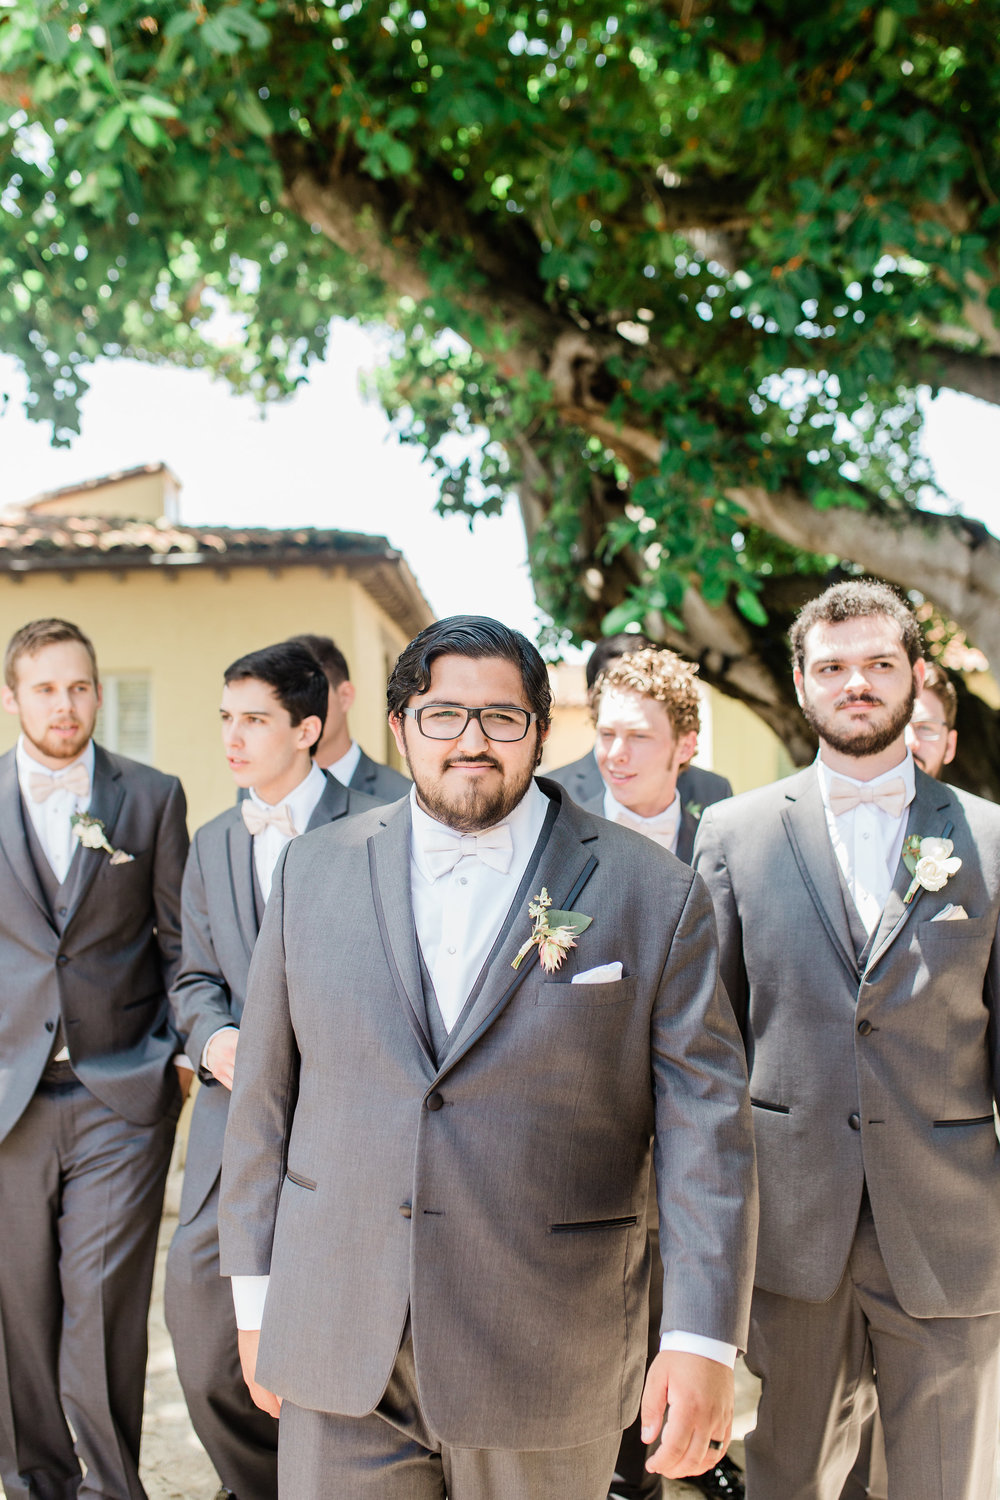 Grey and Blush Groomsmen Palm Beach Wedding Planning by Fleeting Elegance